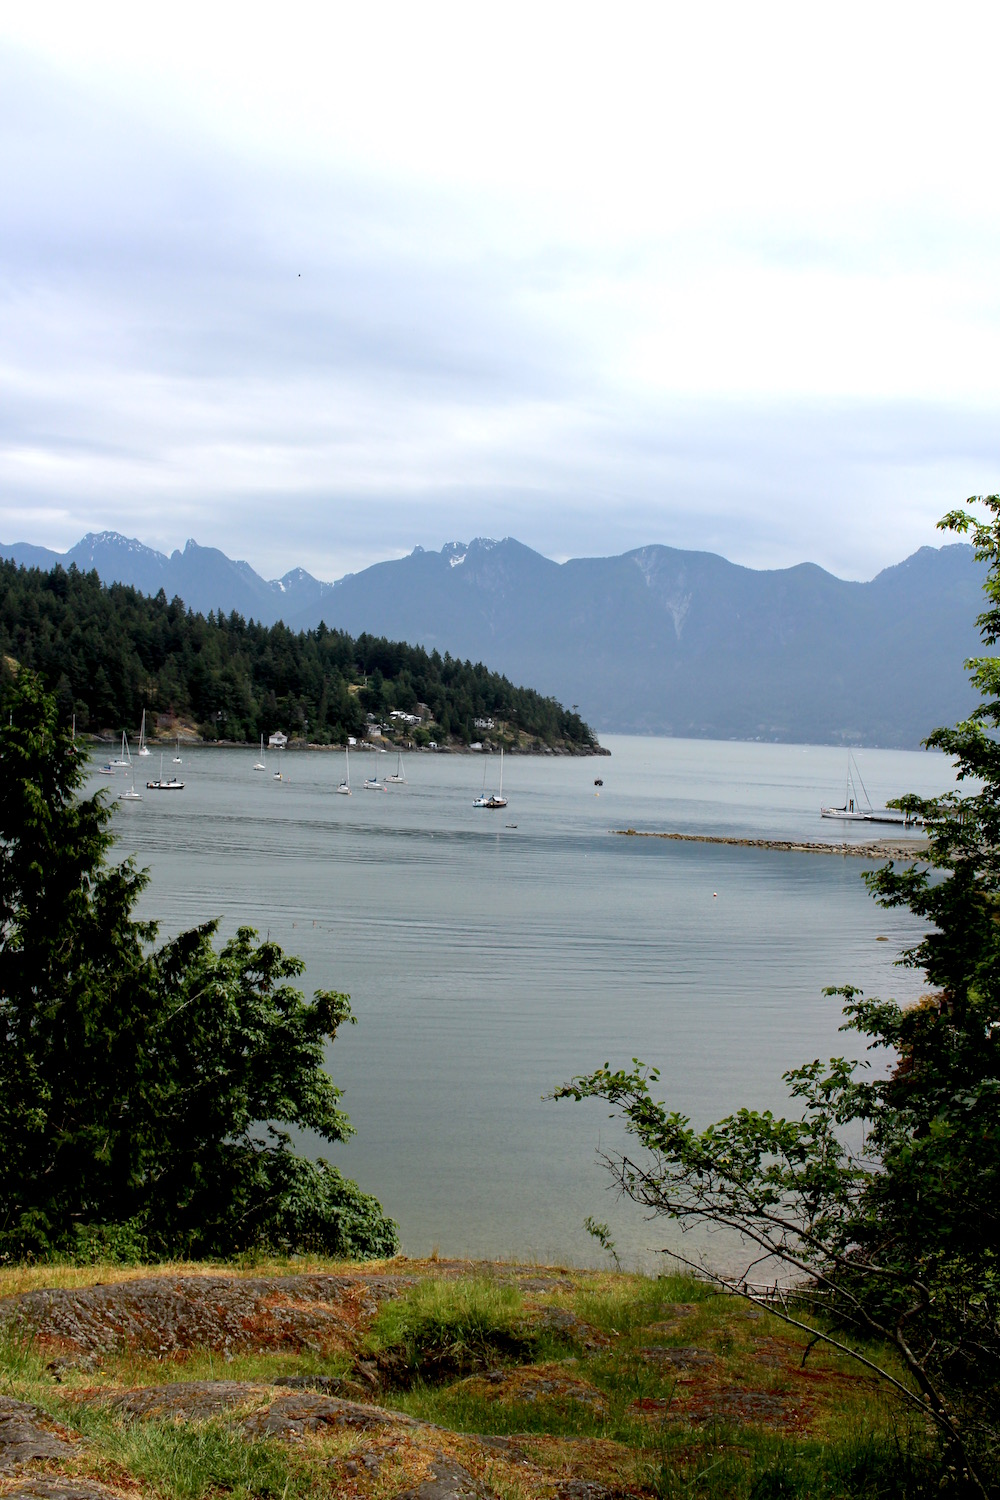 Bowen Island viewpoint